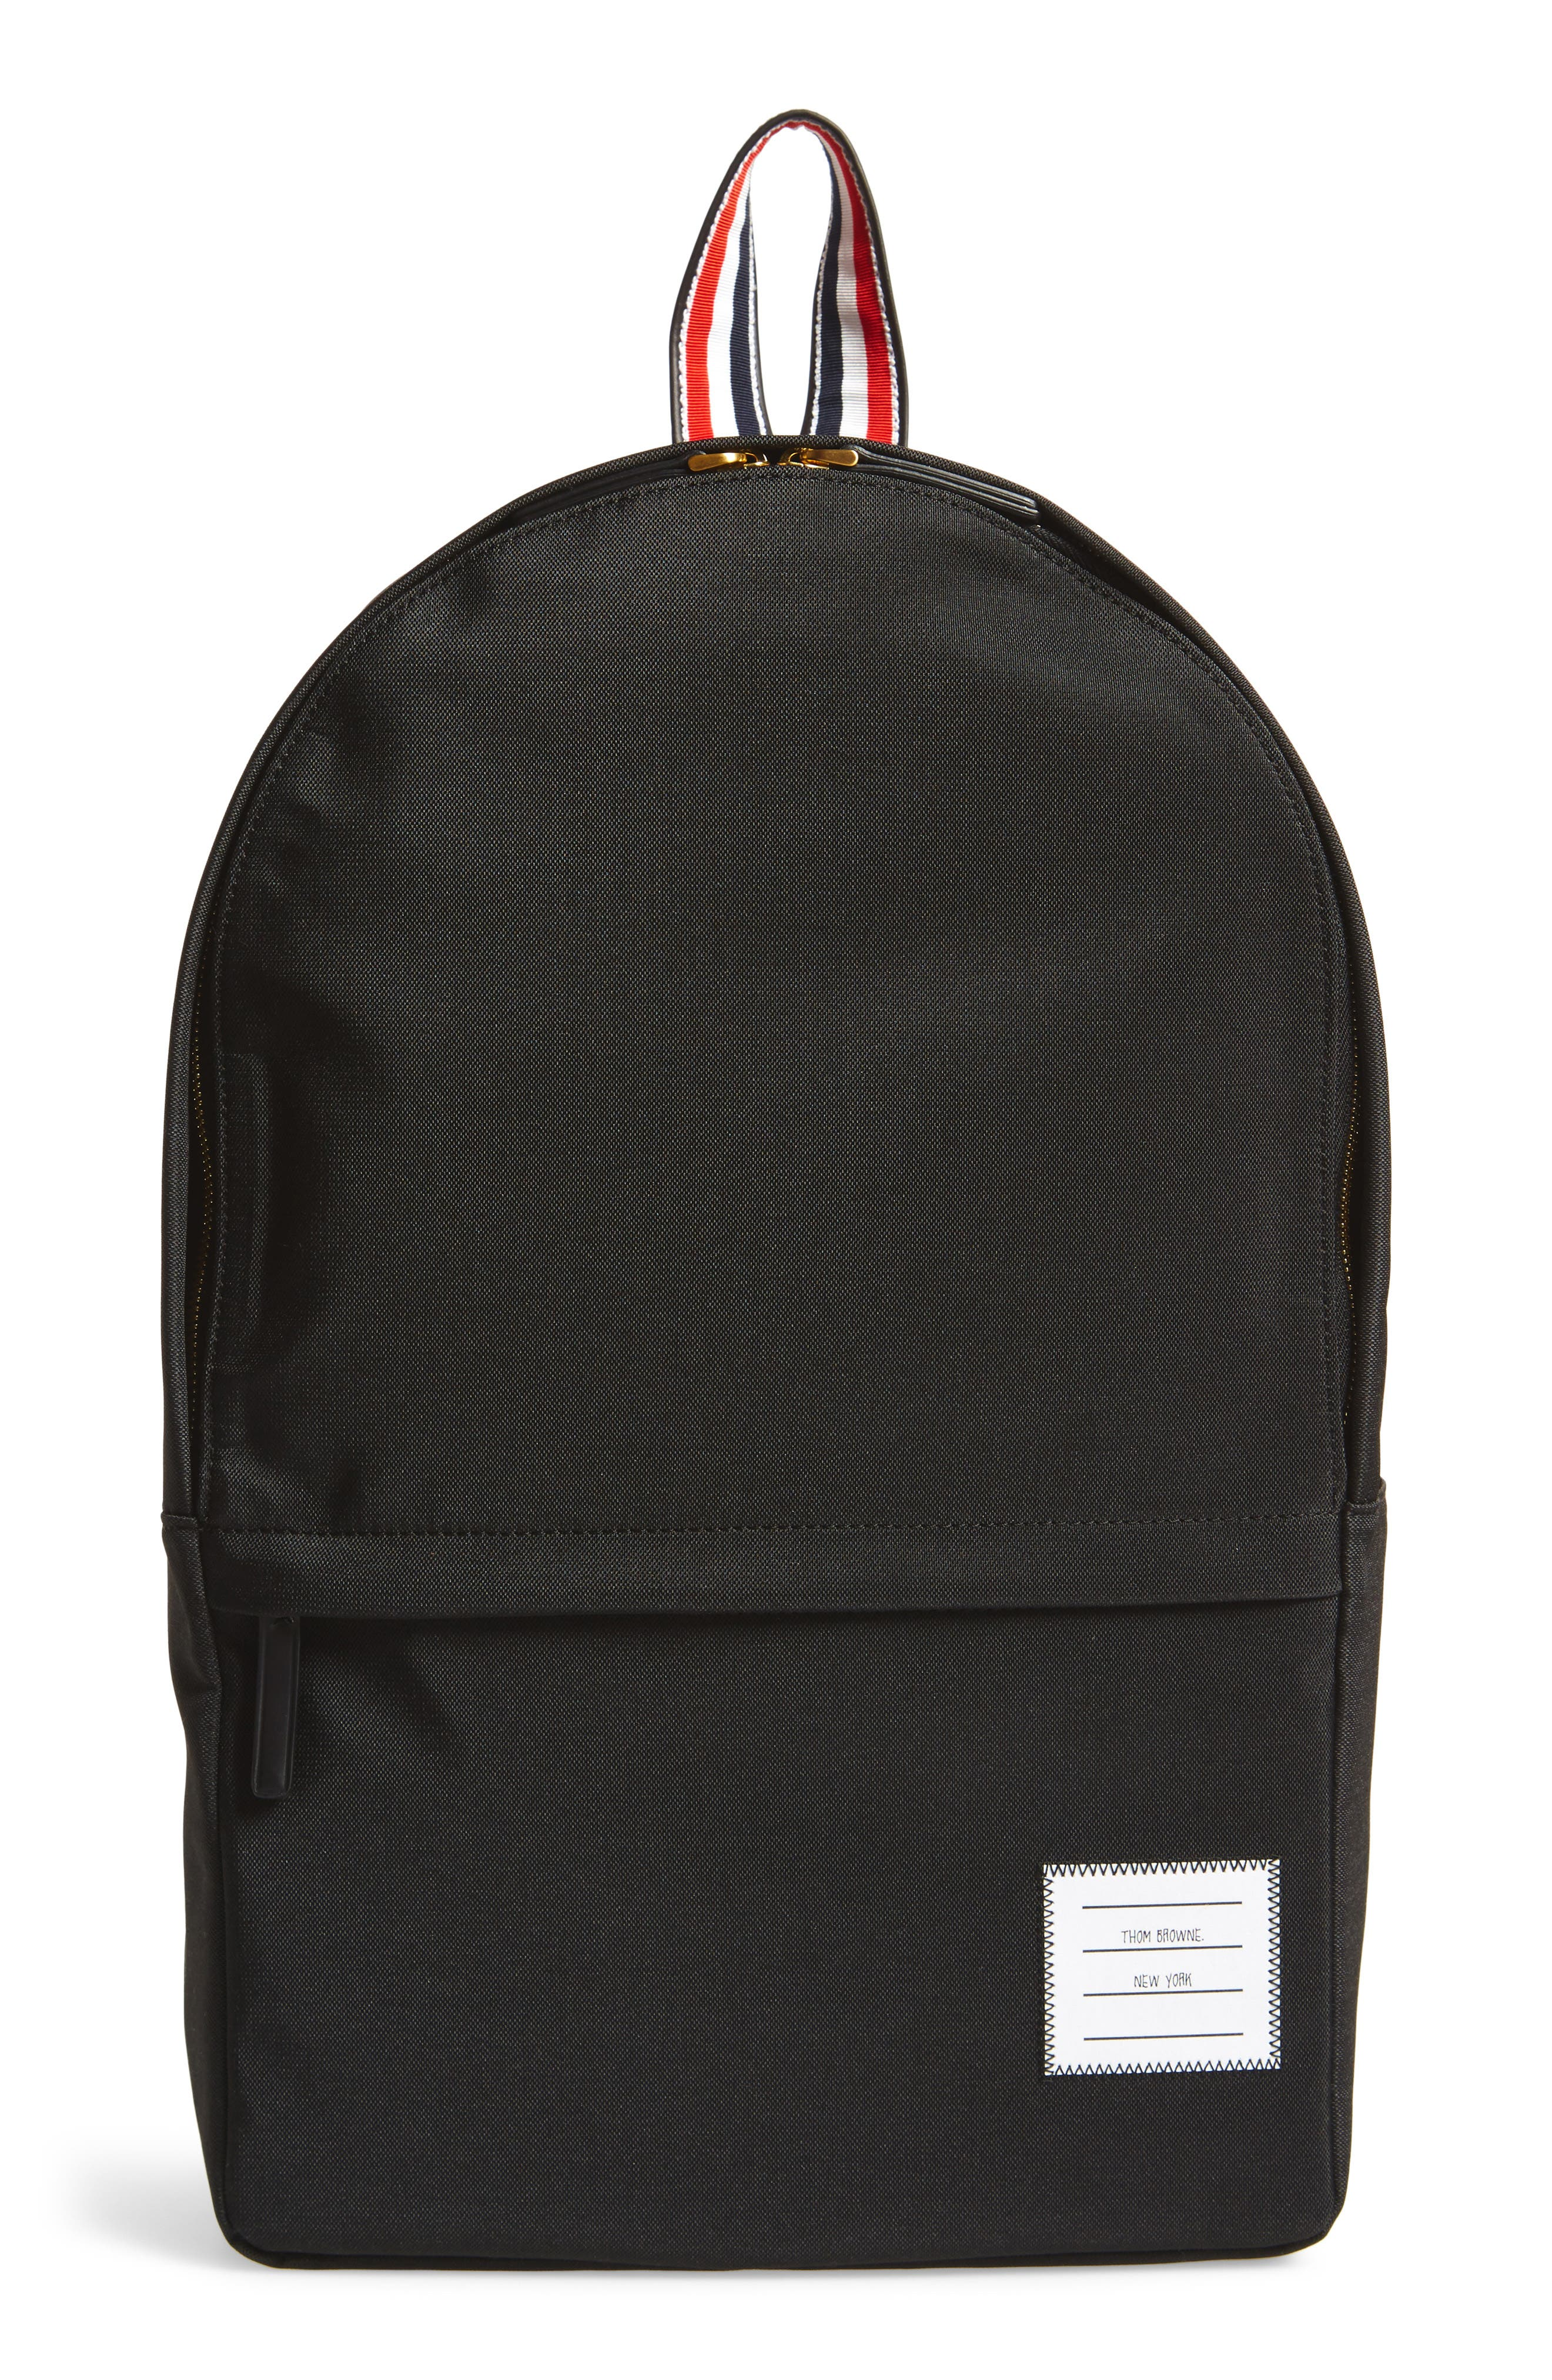 Thom Browne Nylon Backpack